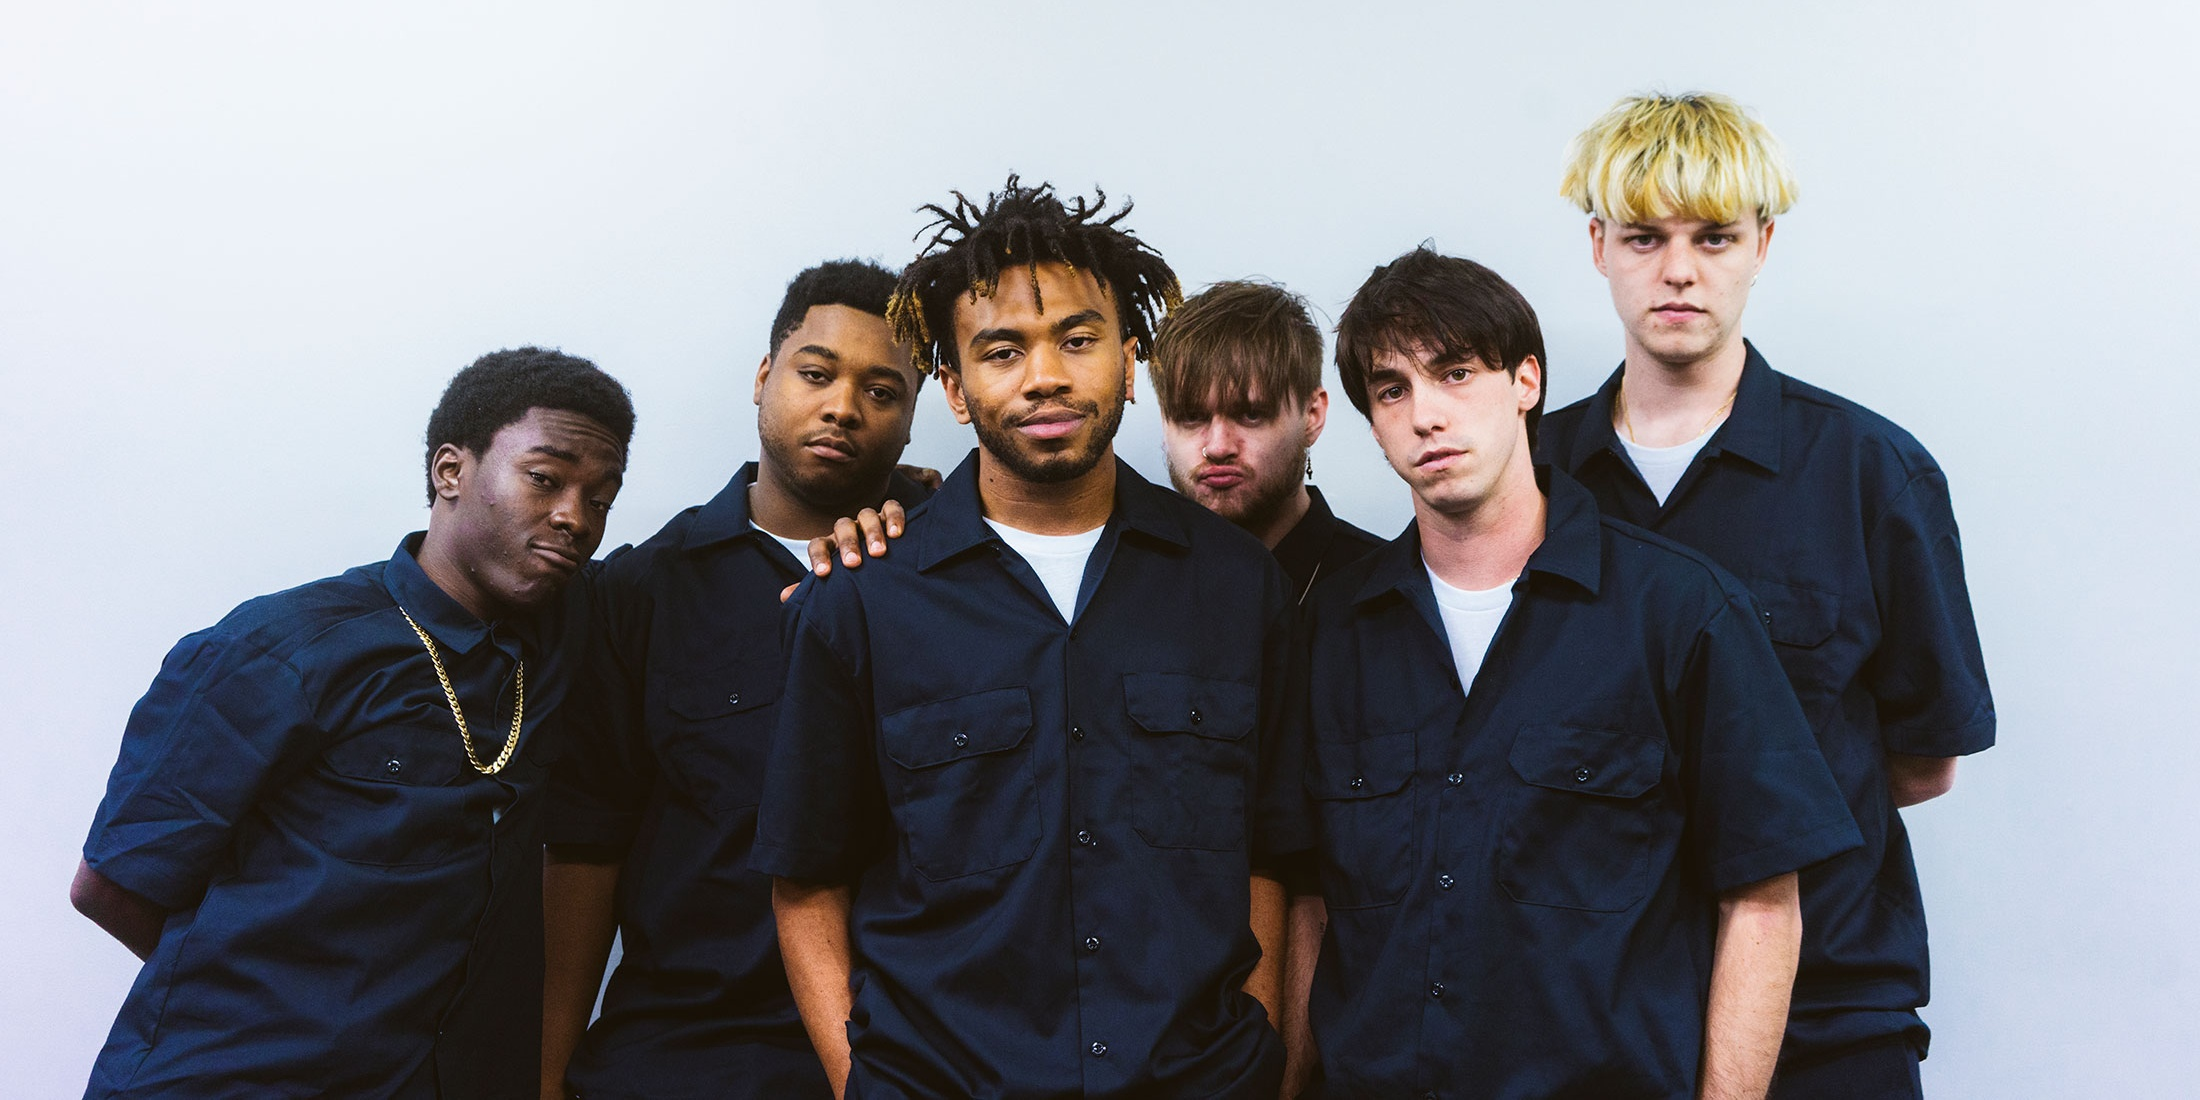 BROCKHAMPTON's new album GINGER is out now